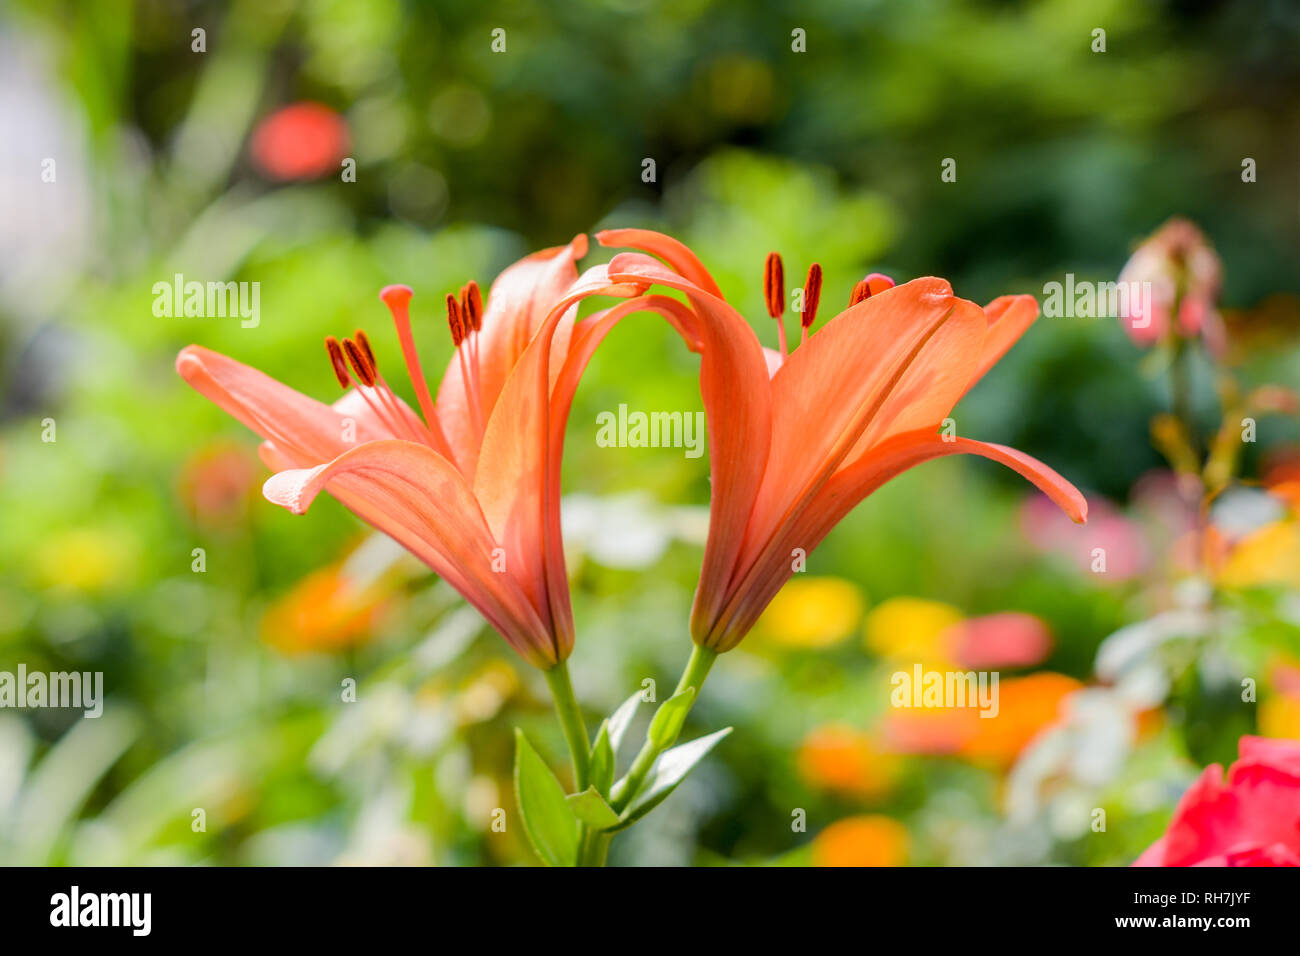 Two Trumpet vine or trumpet creeper (Campsis radicans) flower, known as cow itch or hummingbird vine, with seeds and leaves. Yellow bell tree in morni - Stock Image